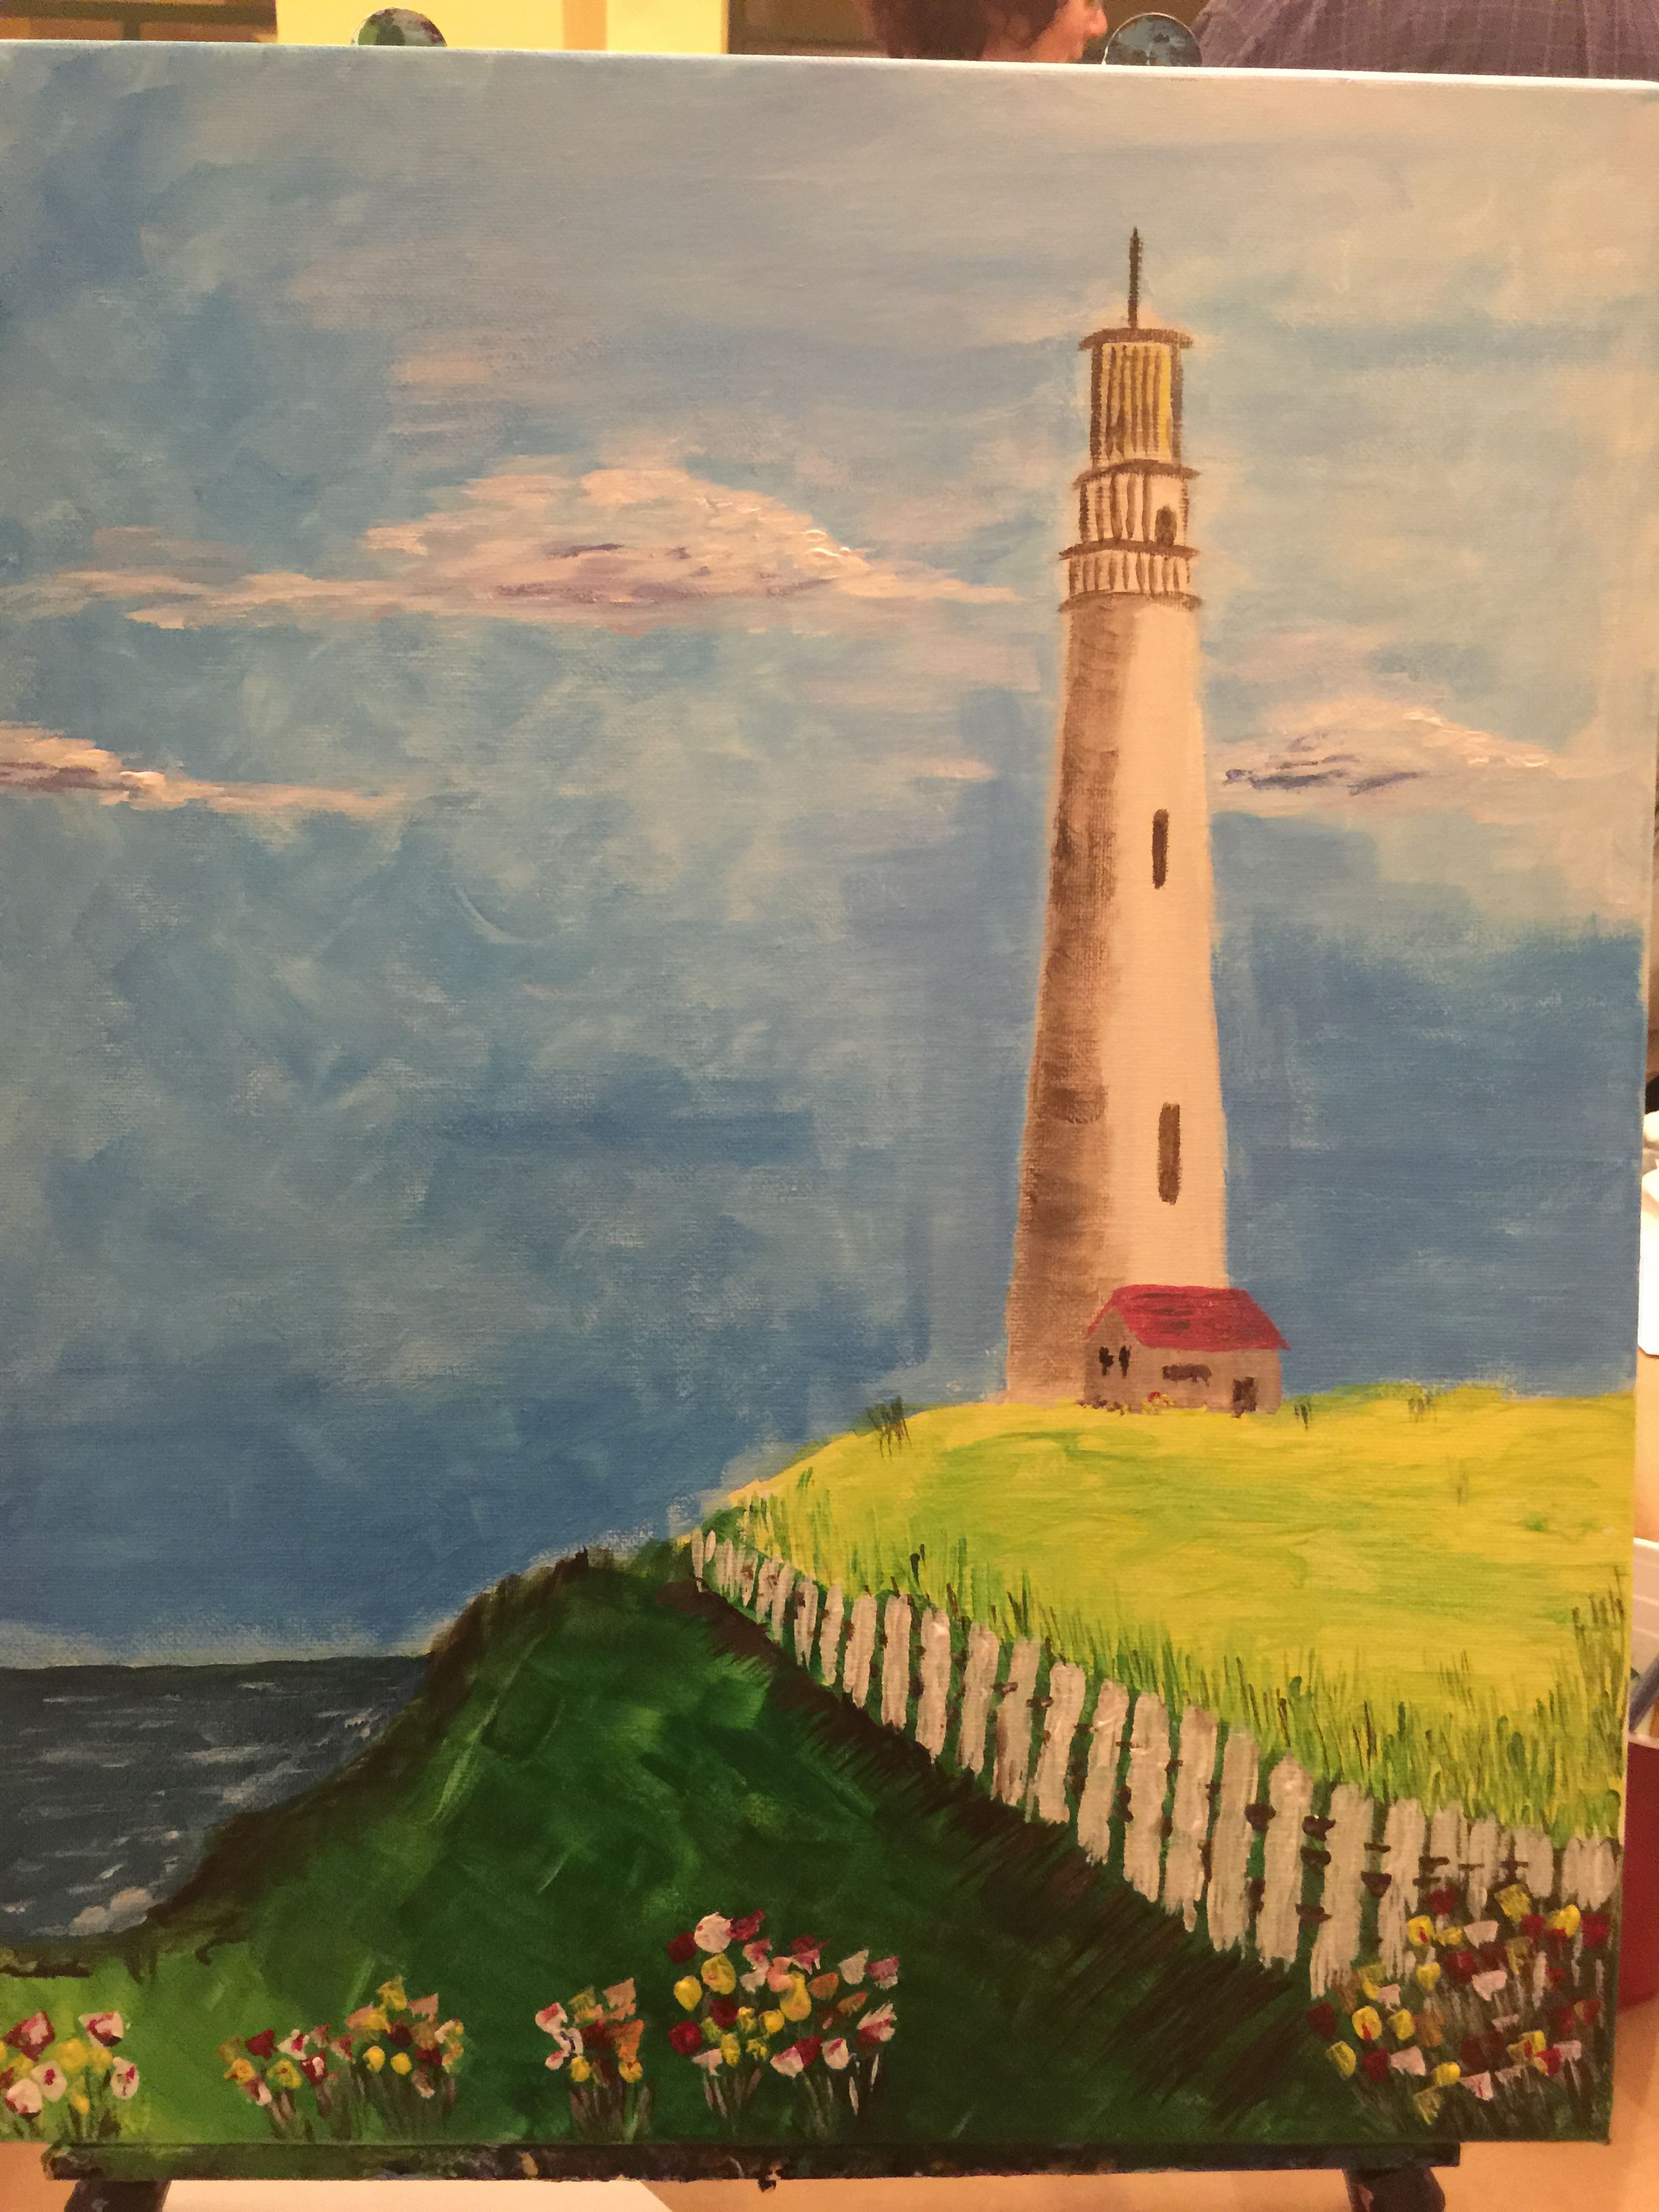 Pigeon Point Lighthouse Acrylic on canvas (16x20) Art Social class produced a very nice landscape/seascape of a local landmark.  A nice painting overall with some good color and perspective.